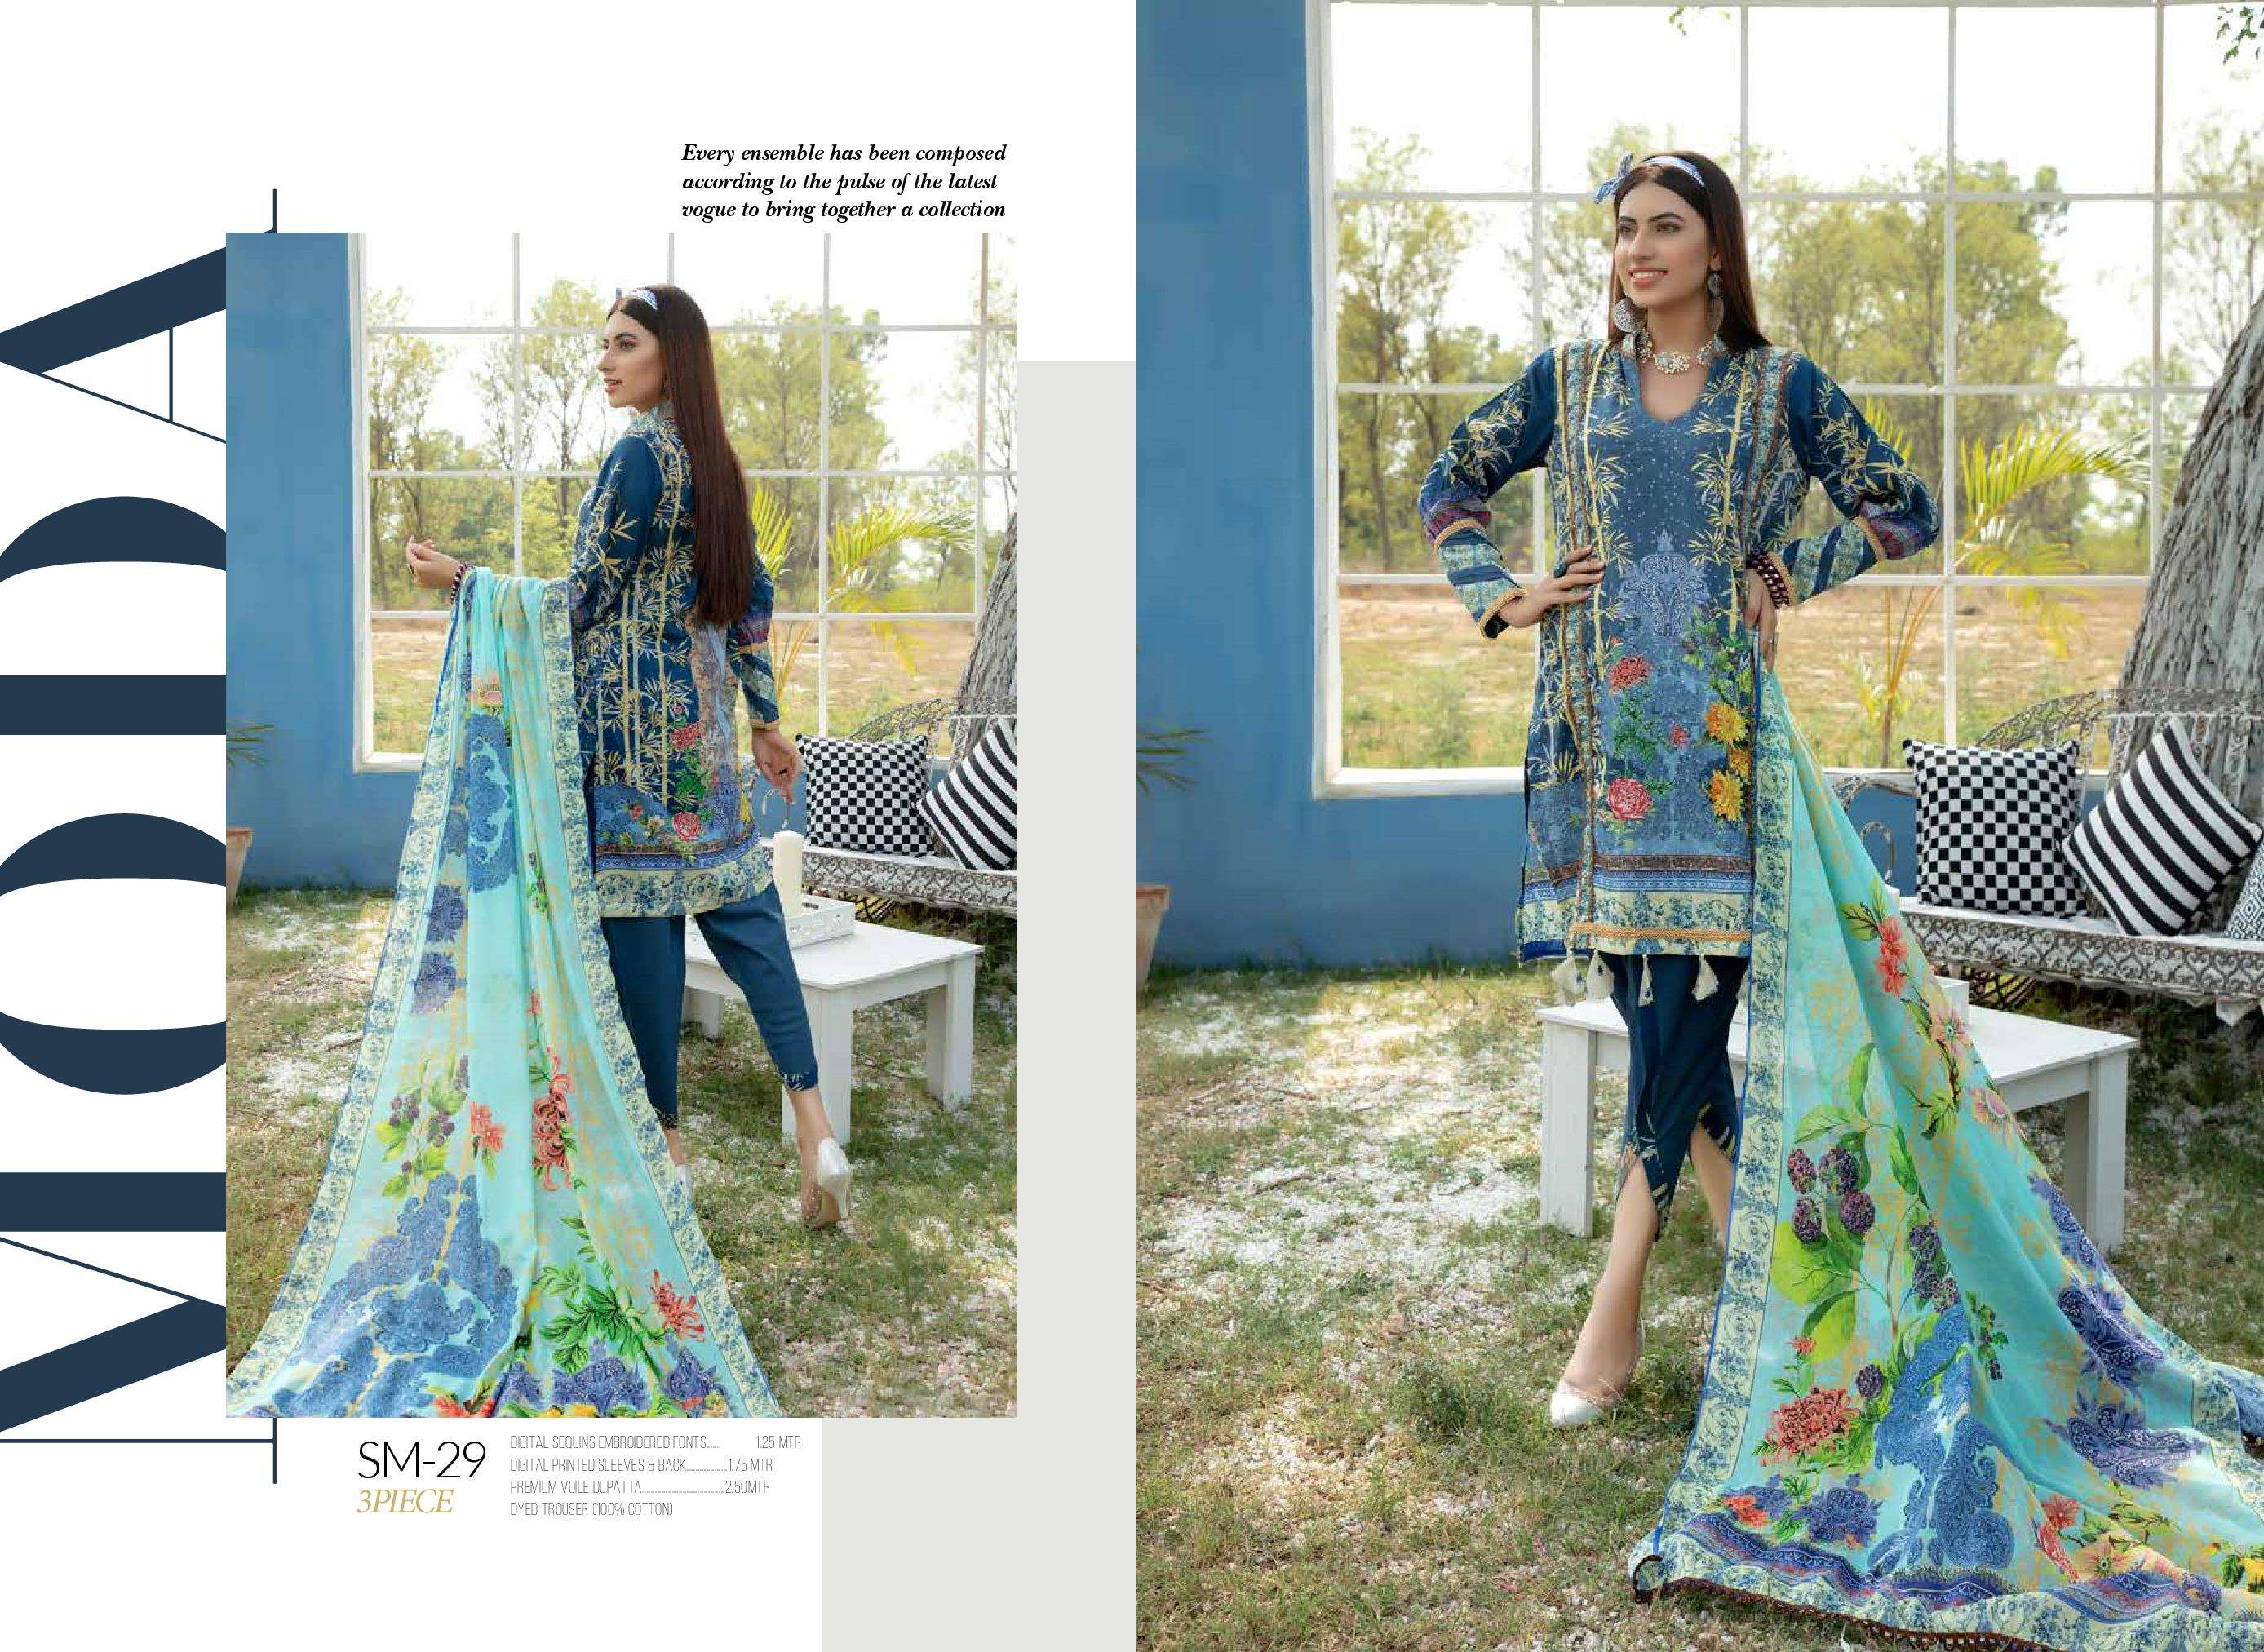 SM-29 - SAFWA DIGITAL EMBROIDERED 3 PIECE MODA COLLECTION -SHIRT Trouser and Duptta |SAFWA DRESS DESIGN| DRESSES| PAKISTANI DRESSES| SAFWA -SAFWA Brand Pakistan online shopping for Designer Dresses